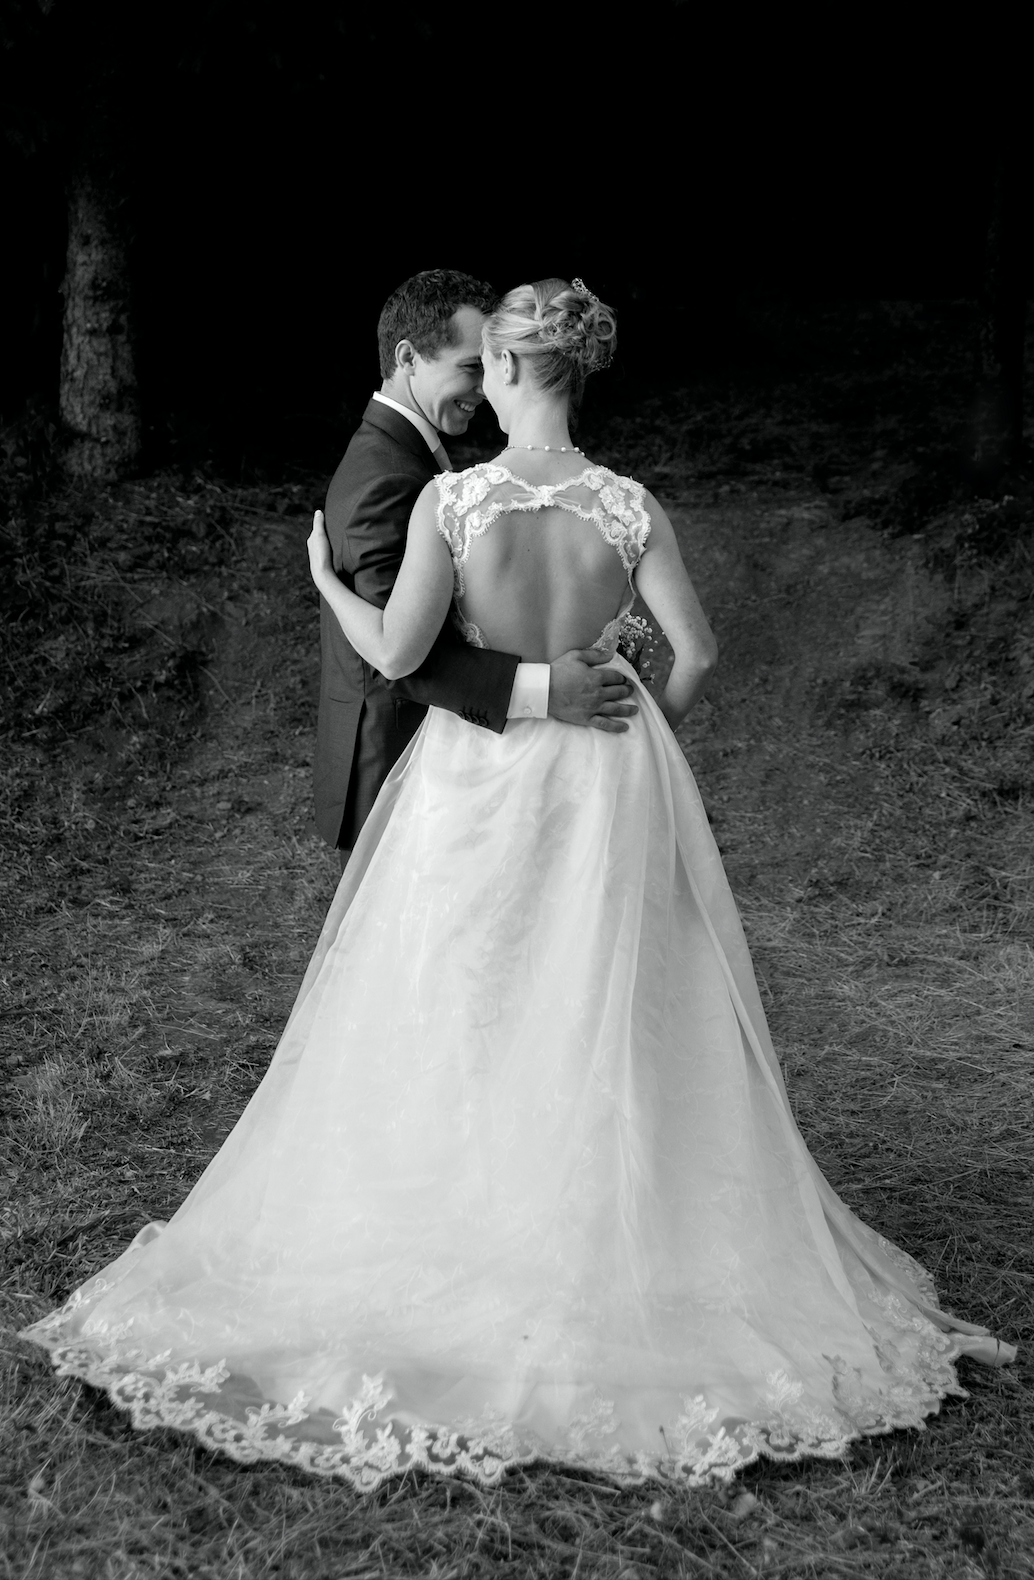 The dress with removable full overskirt